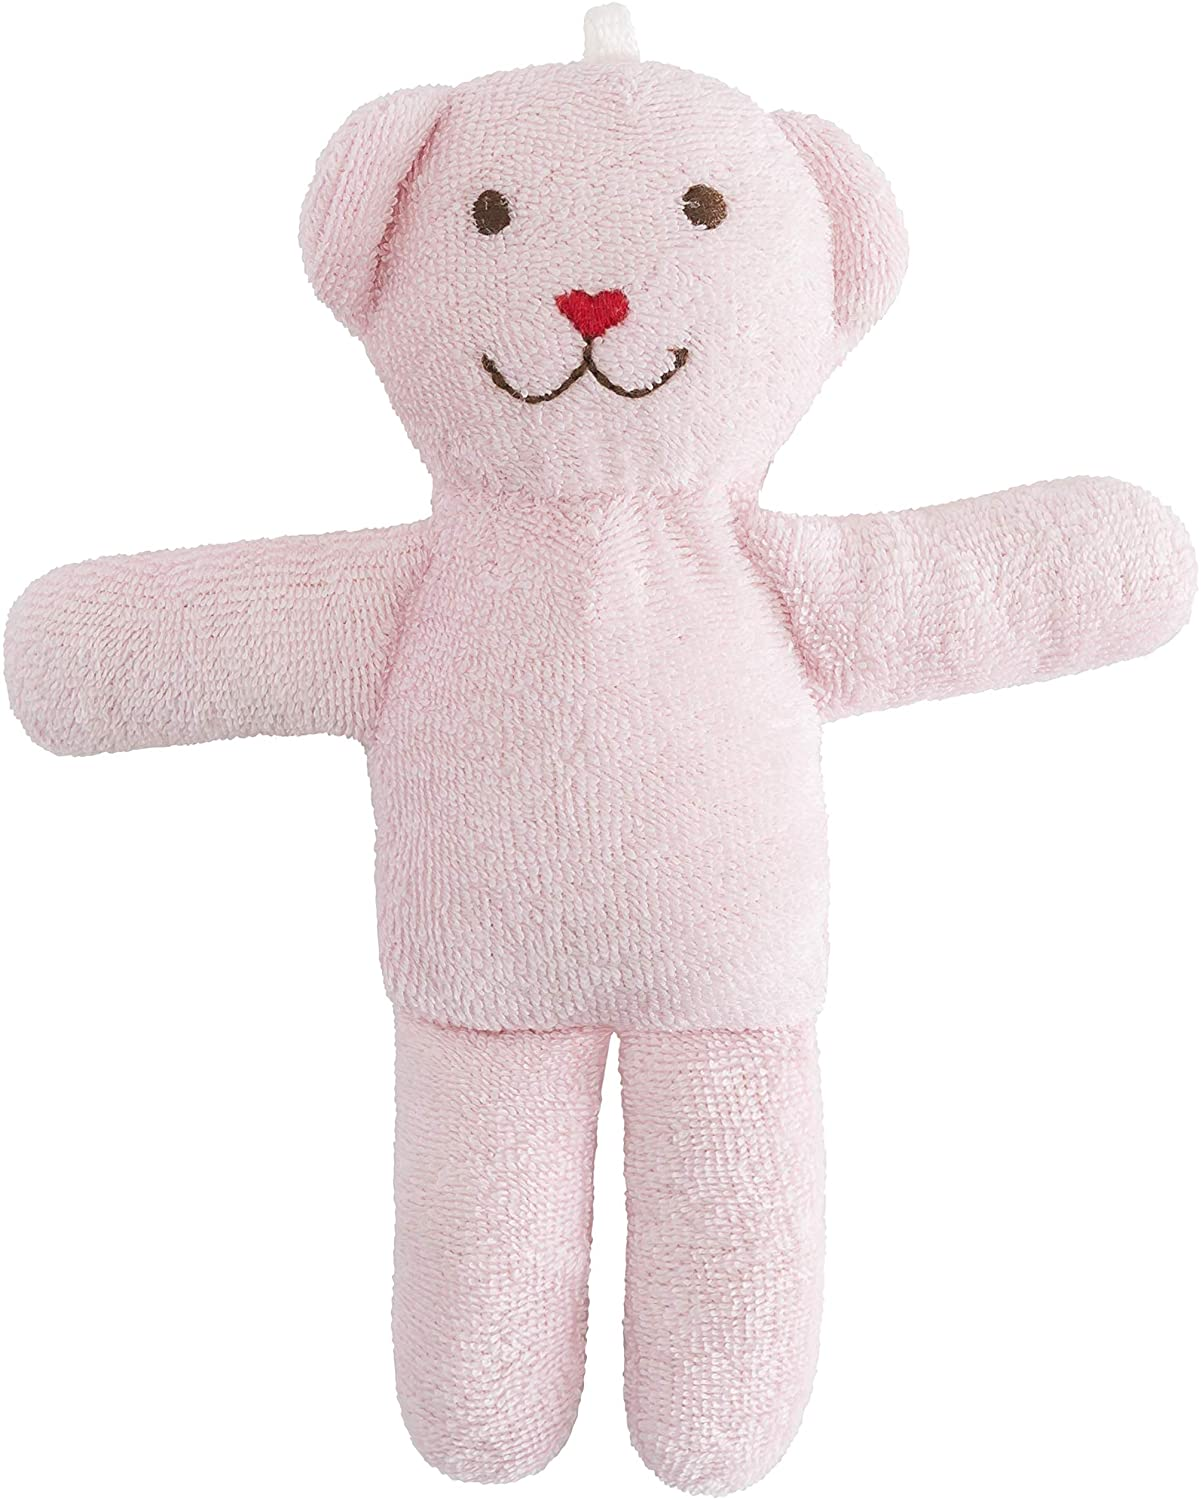 Under the Nile Organic Cotton Baby Toy Scrappy Bear Stuffed Animal 7 Tall, One Bear (Pink)